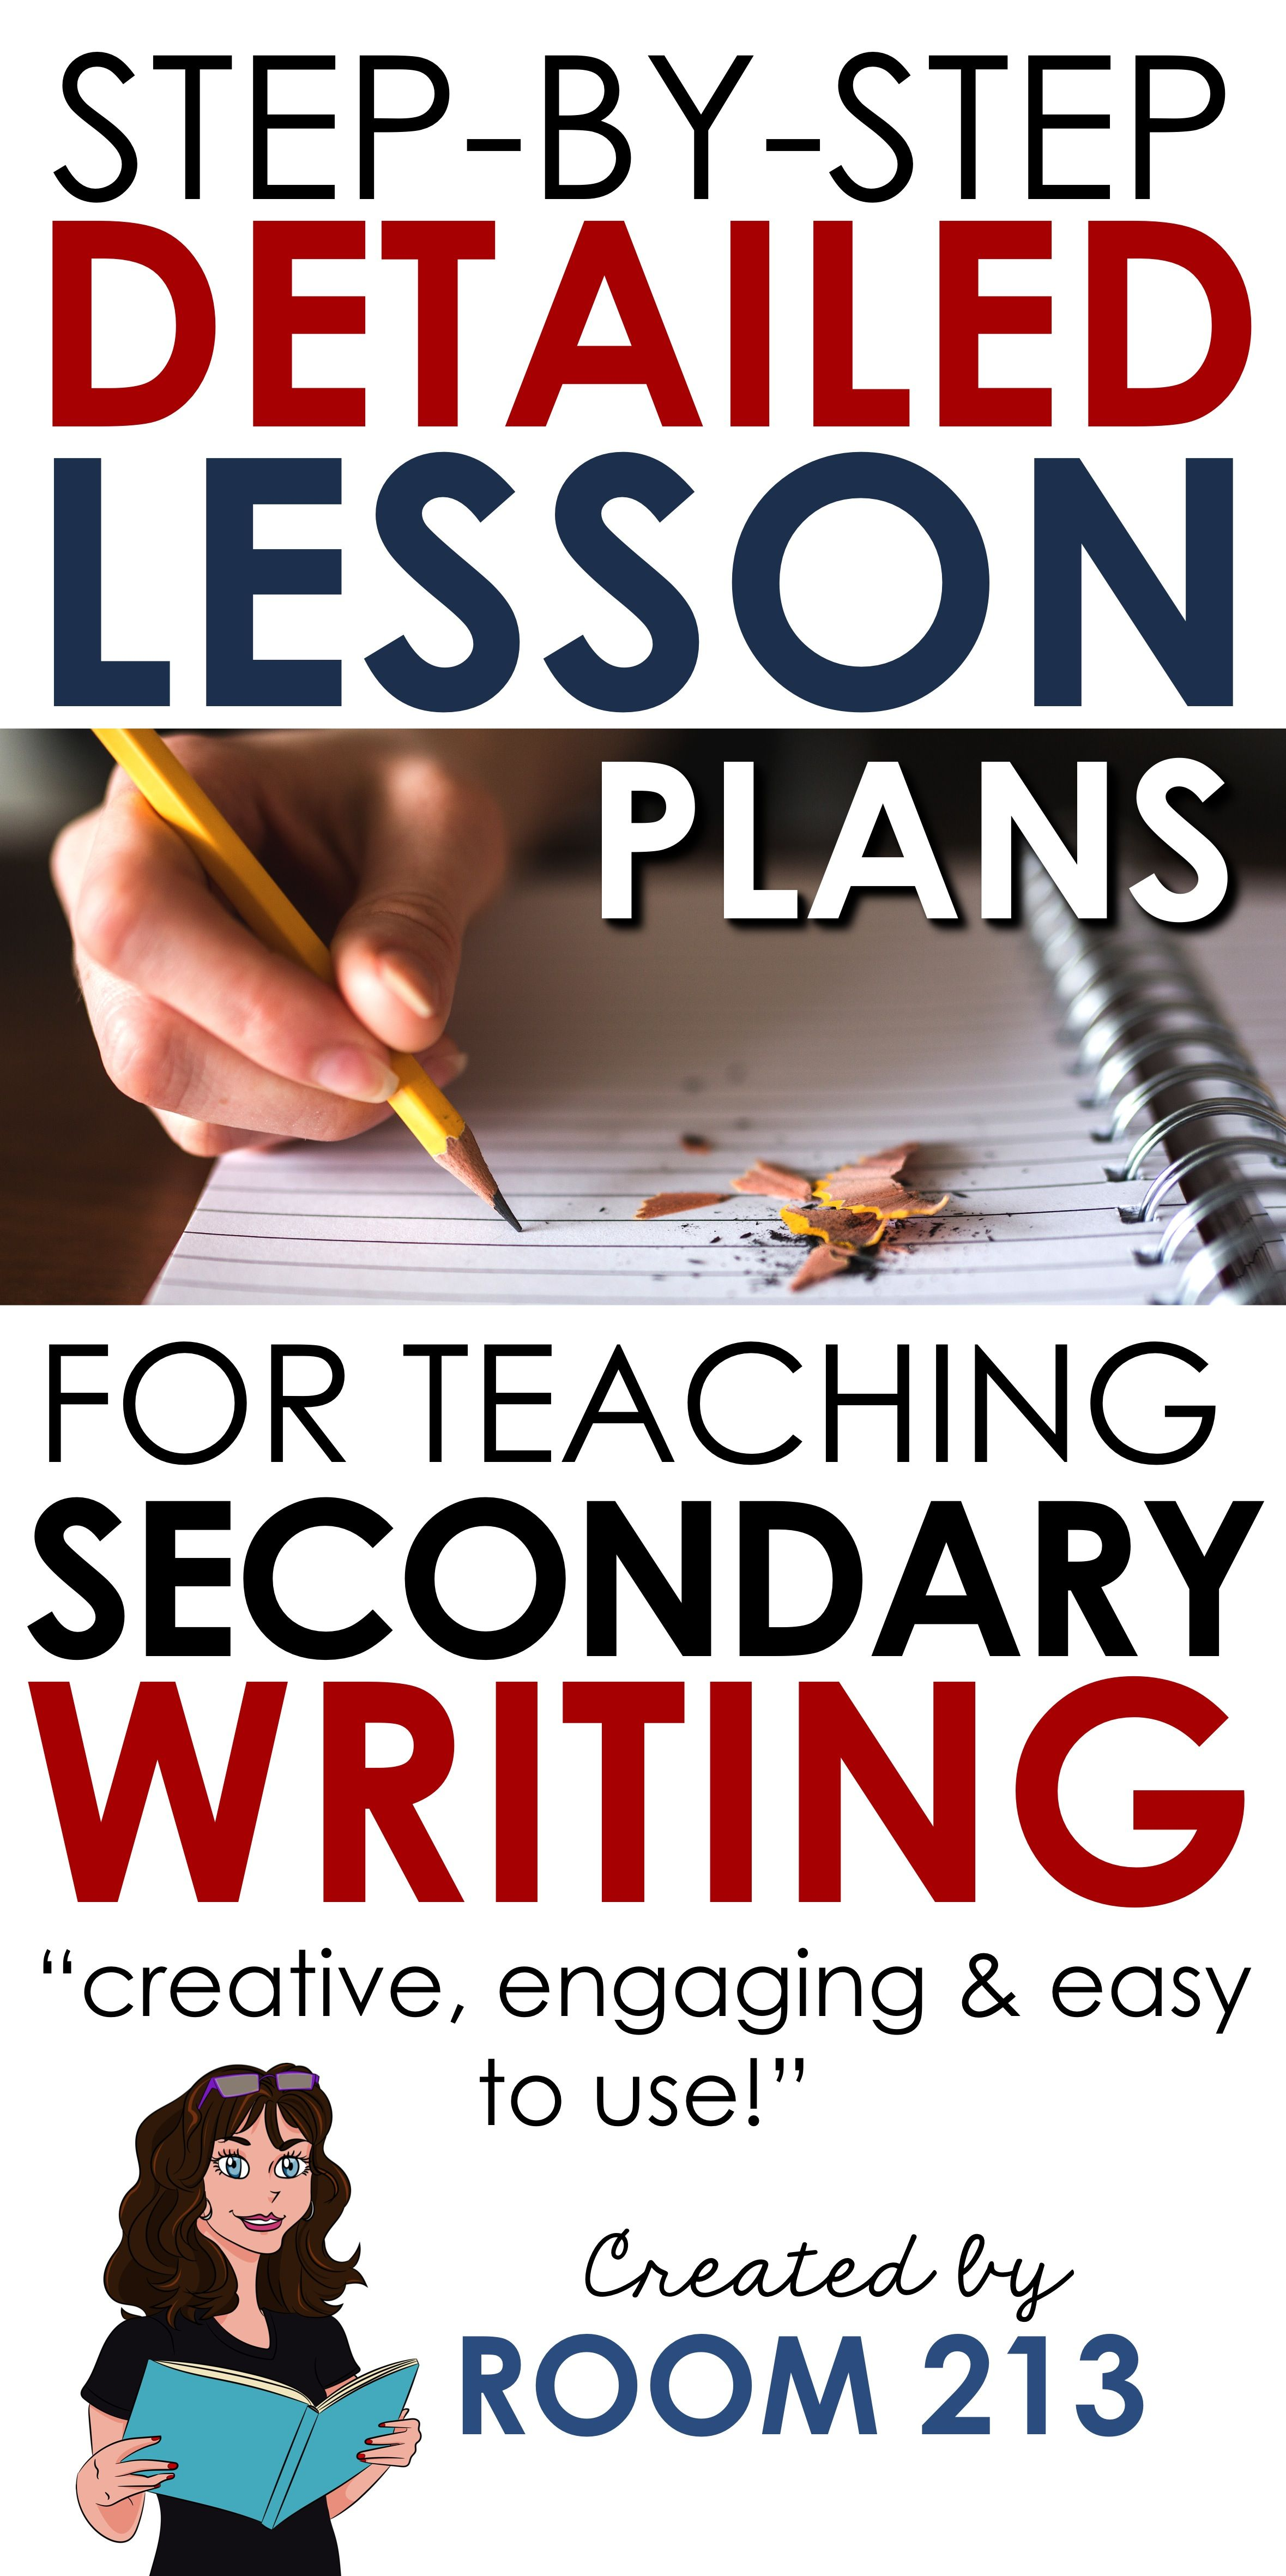 writing lessons word choice writing lessons language arts and secondary teacher acircmiddot click to engaging writing lessons on the power of word choice in descriptive narrative